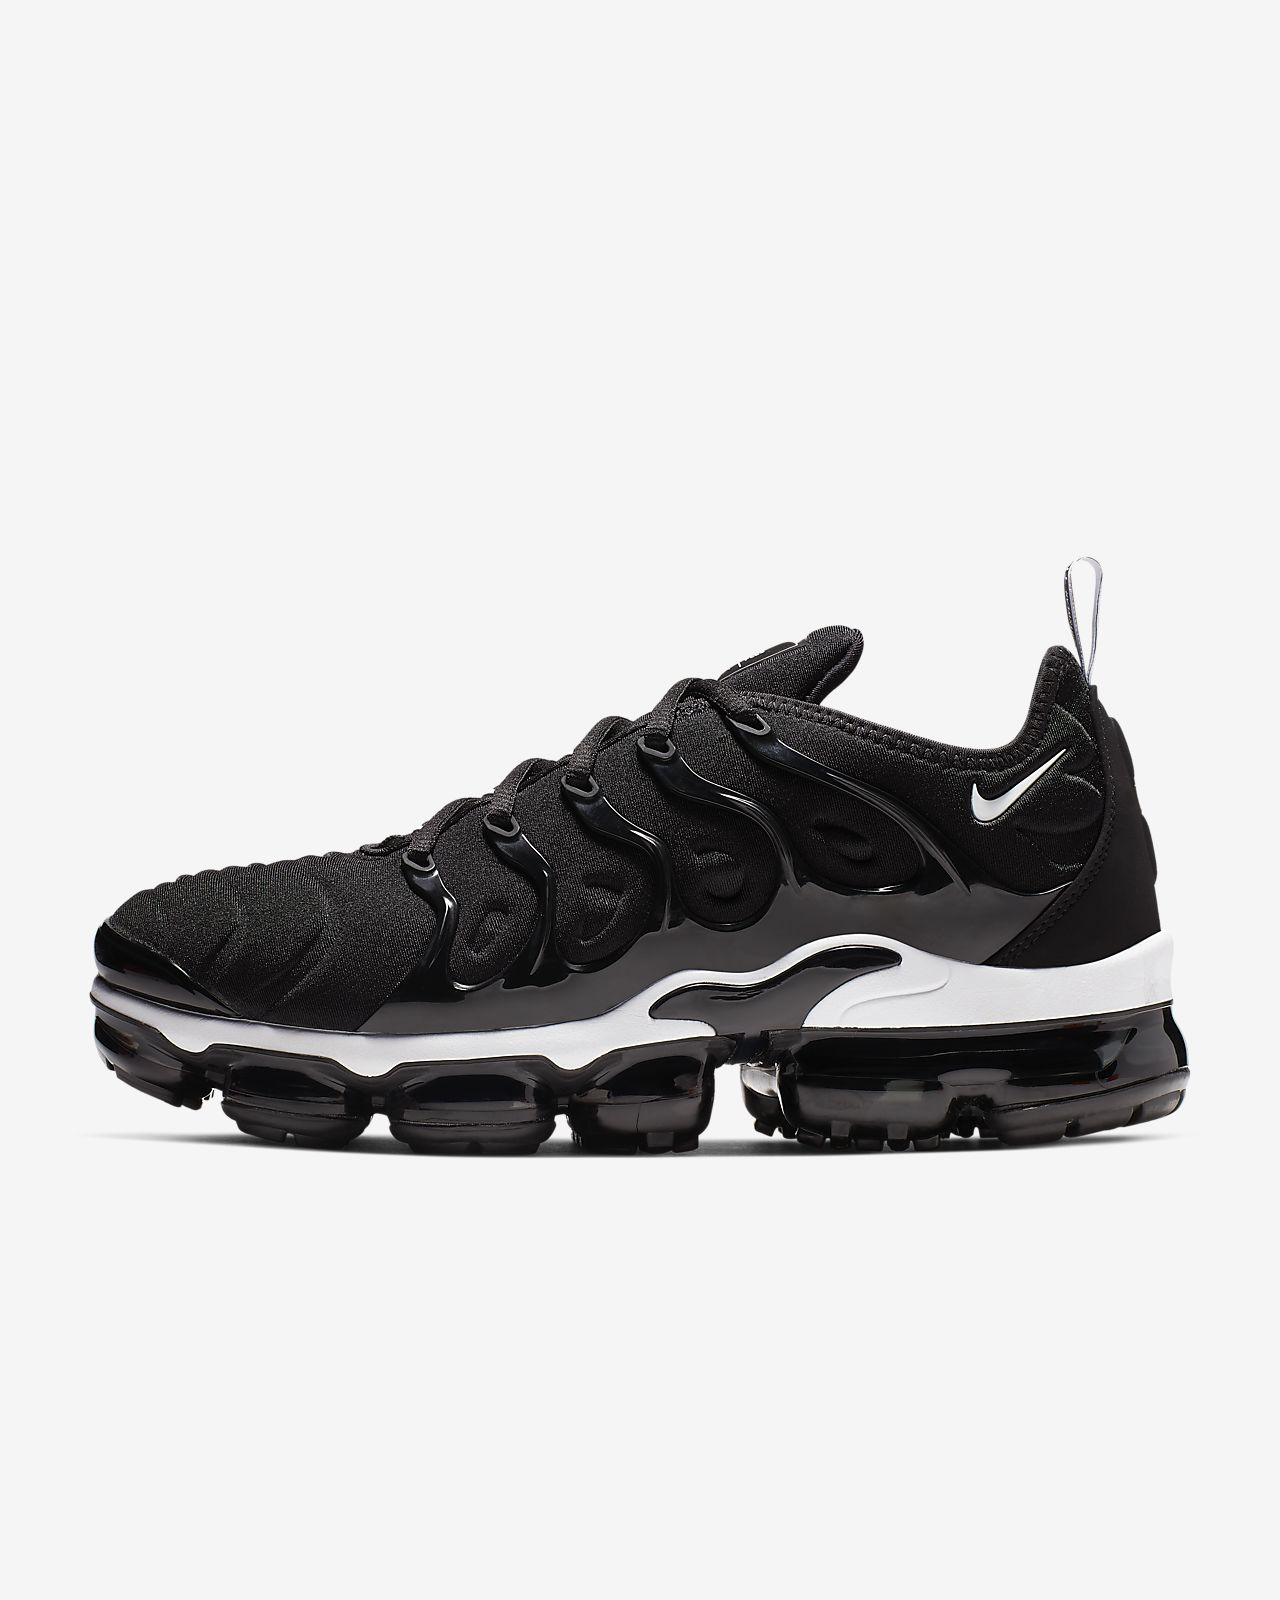 8b314f2c818 Nike Air VaporMax Plus Men s Shoe. Nike.com AE